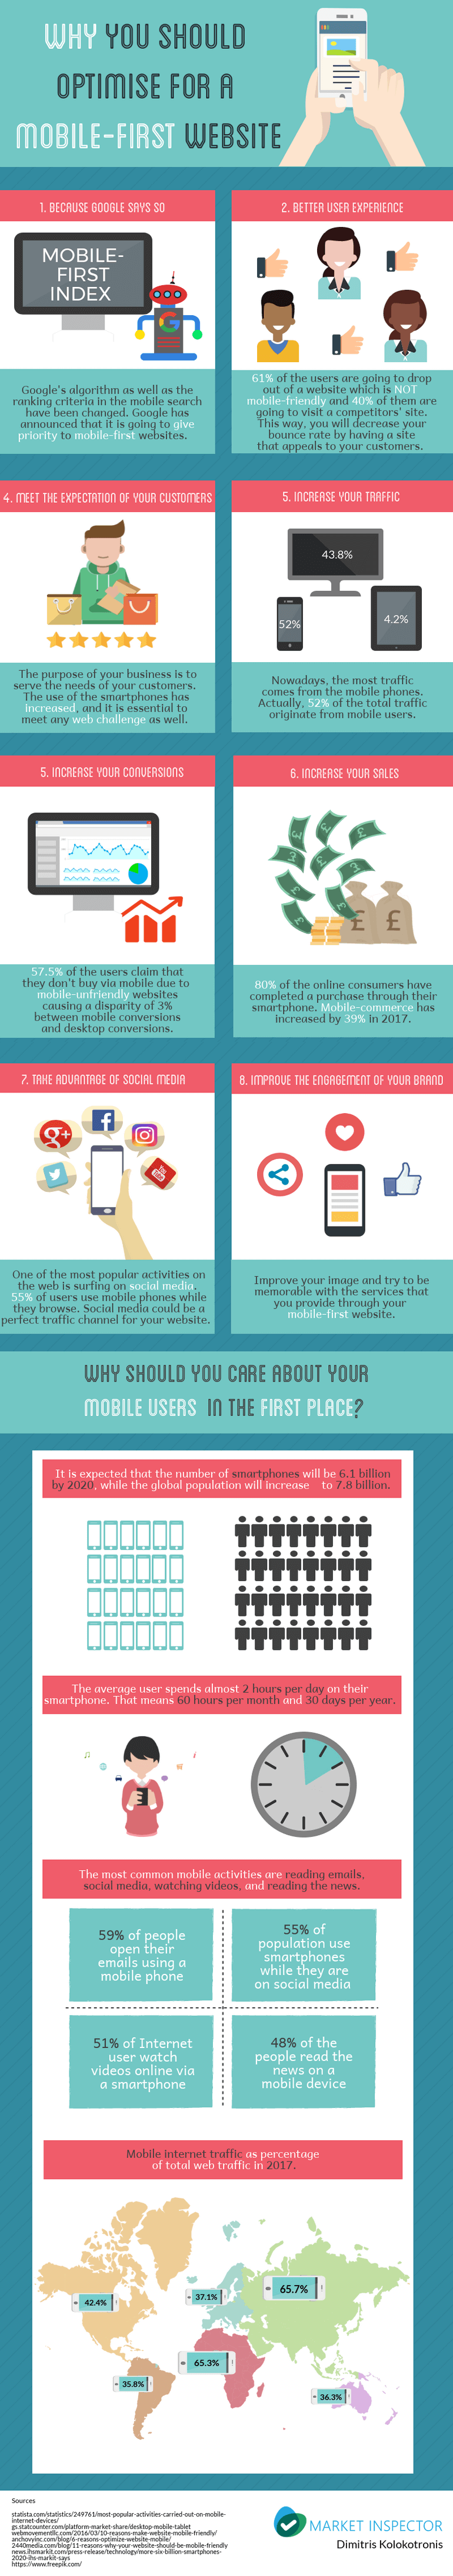 8 reasons to build mobile first - Infographic